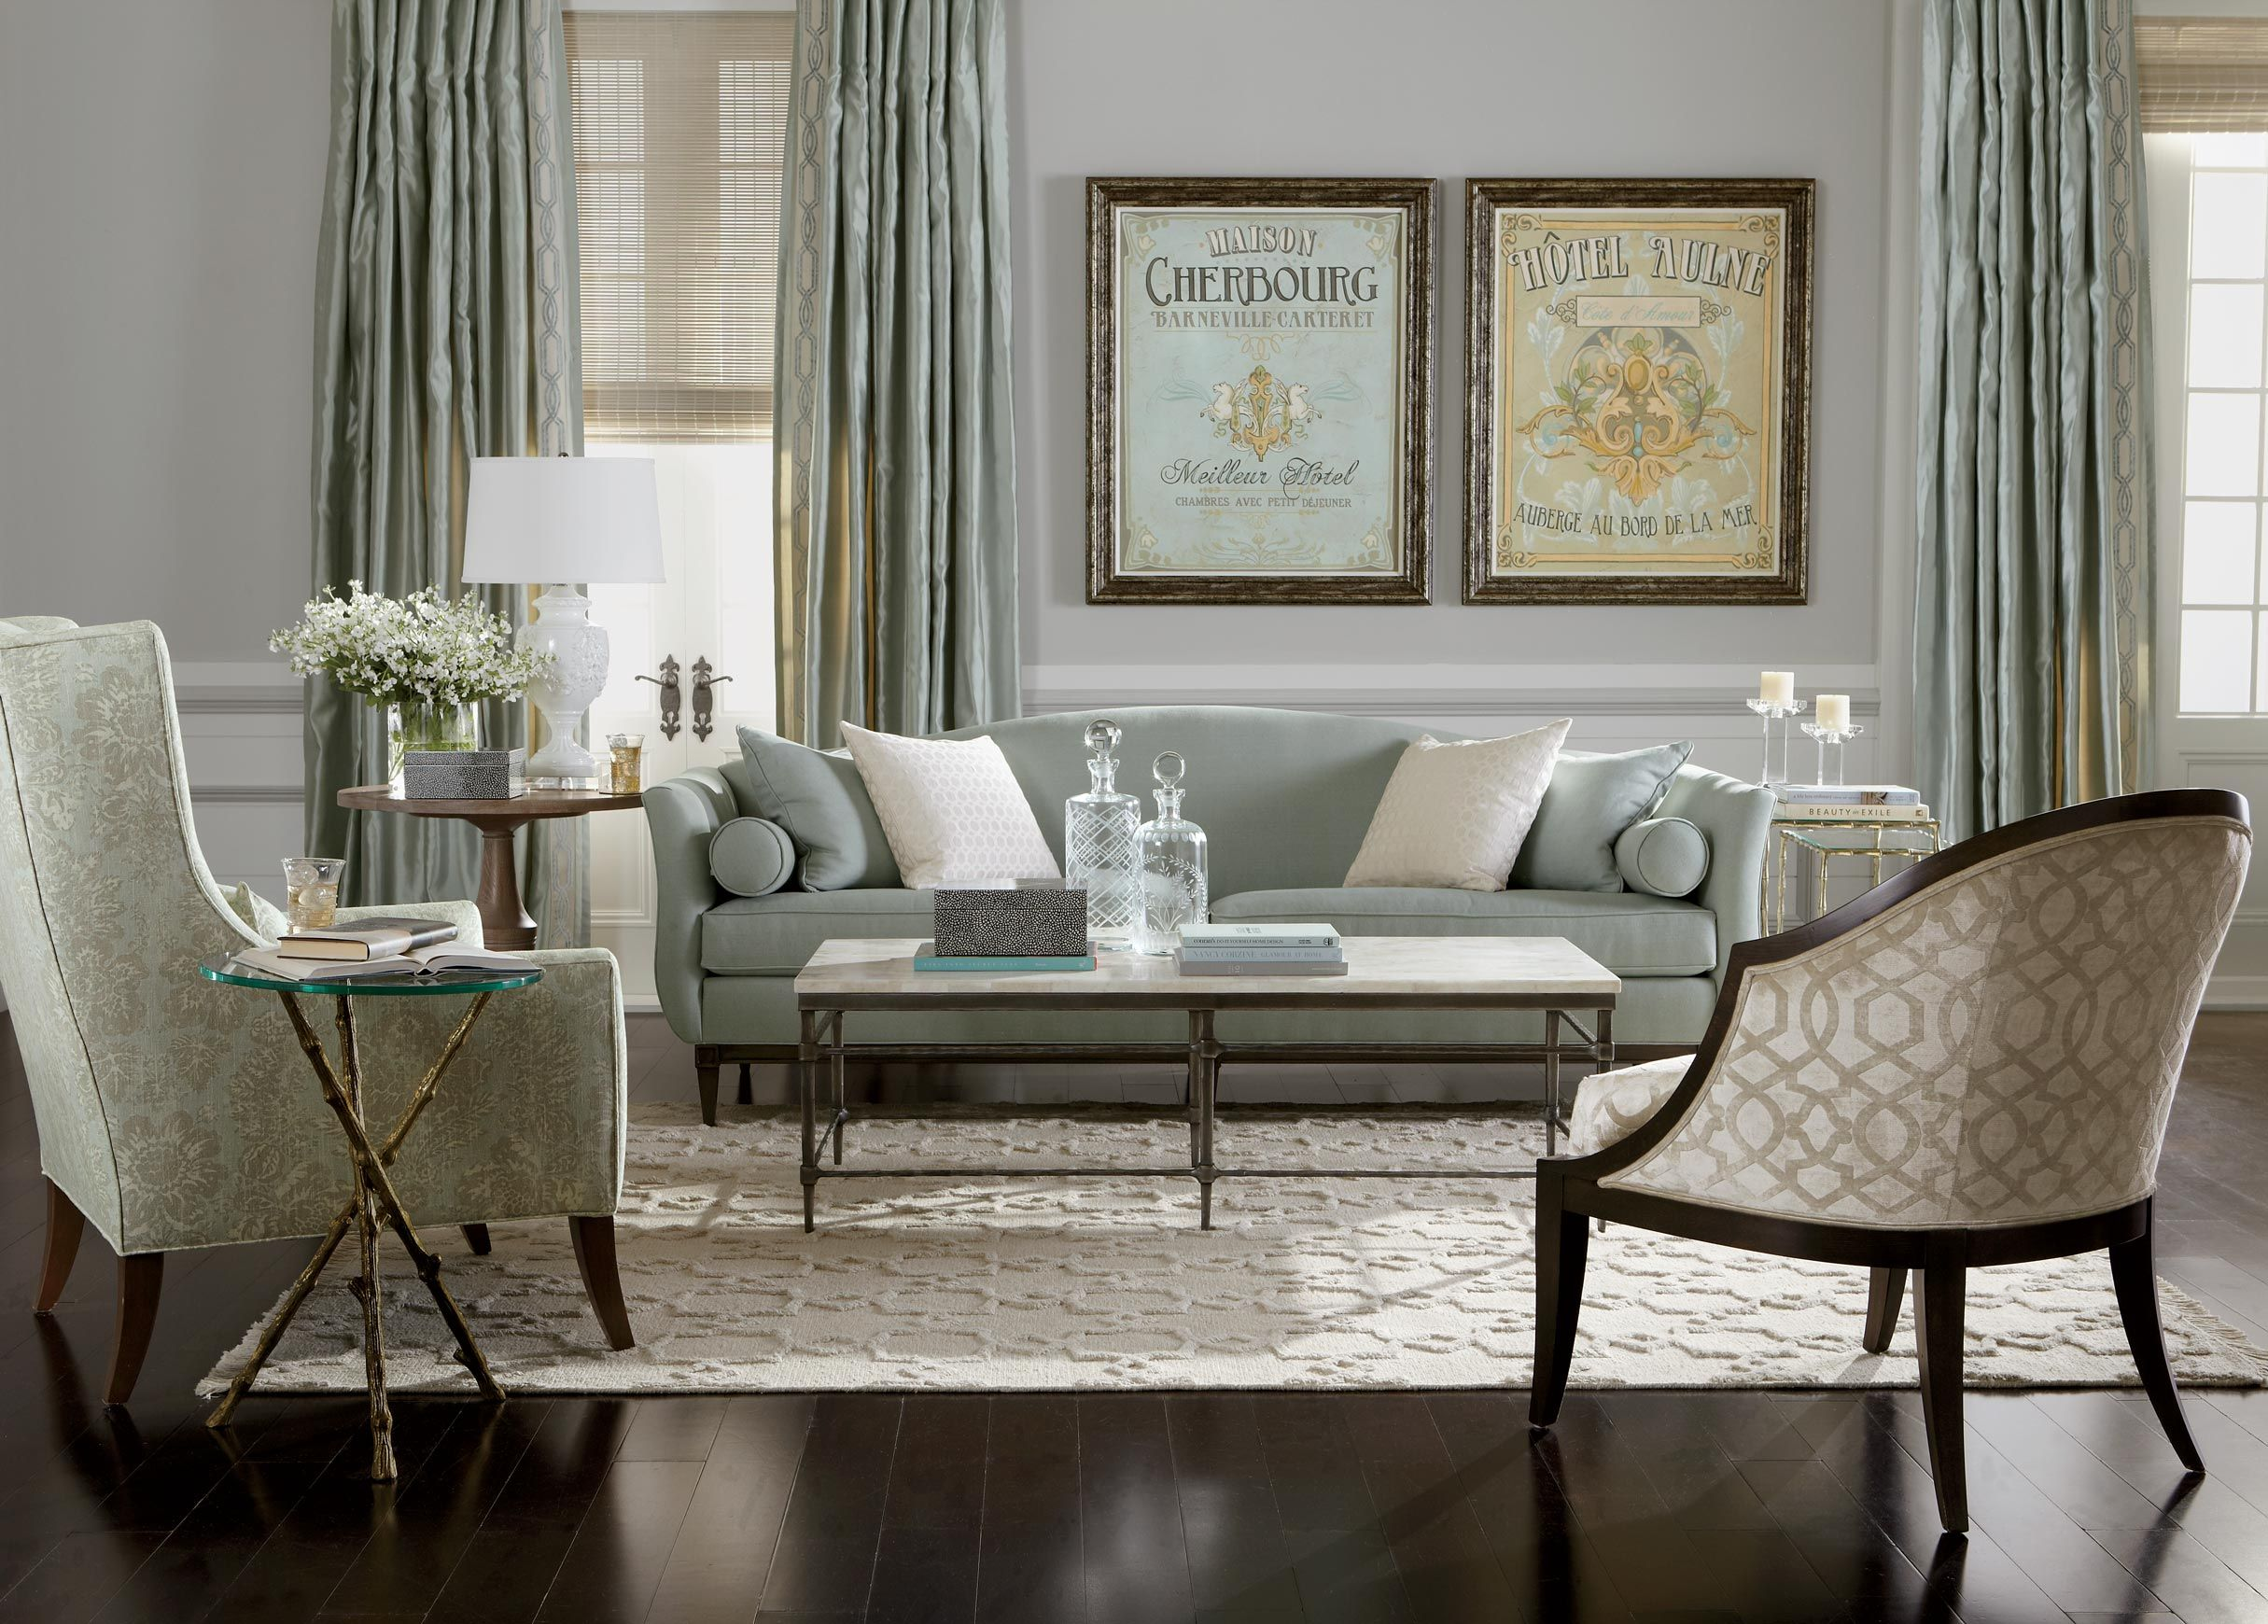 Ethan Allen Living Room Ideas Bookcase Minimalist House Design Inspiration